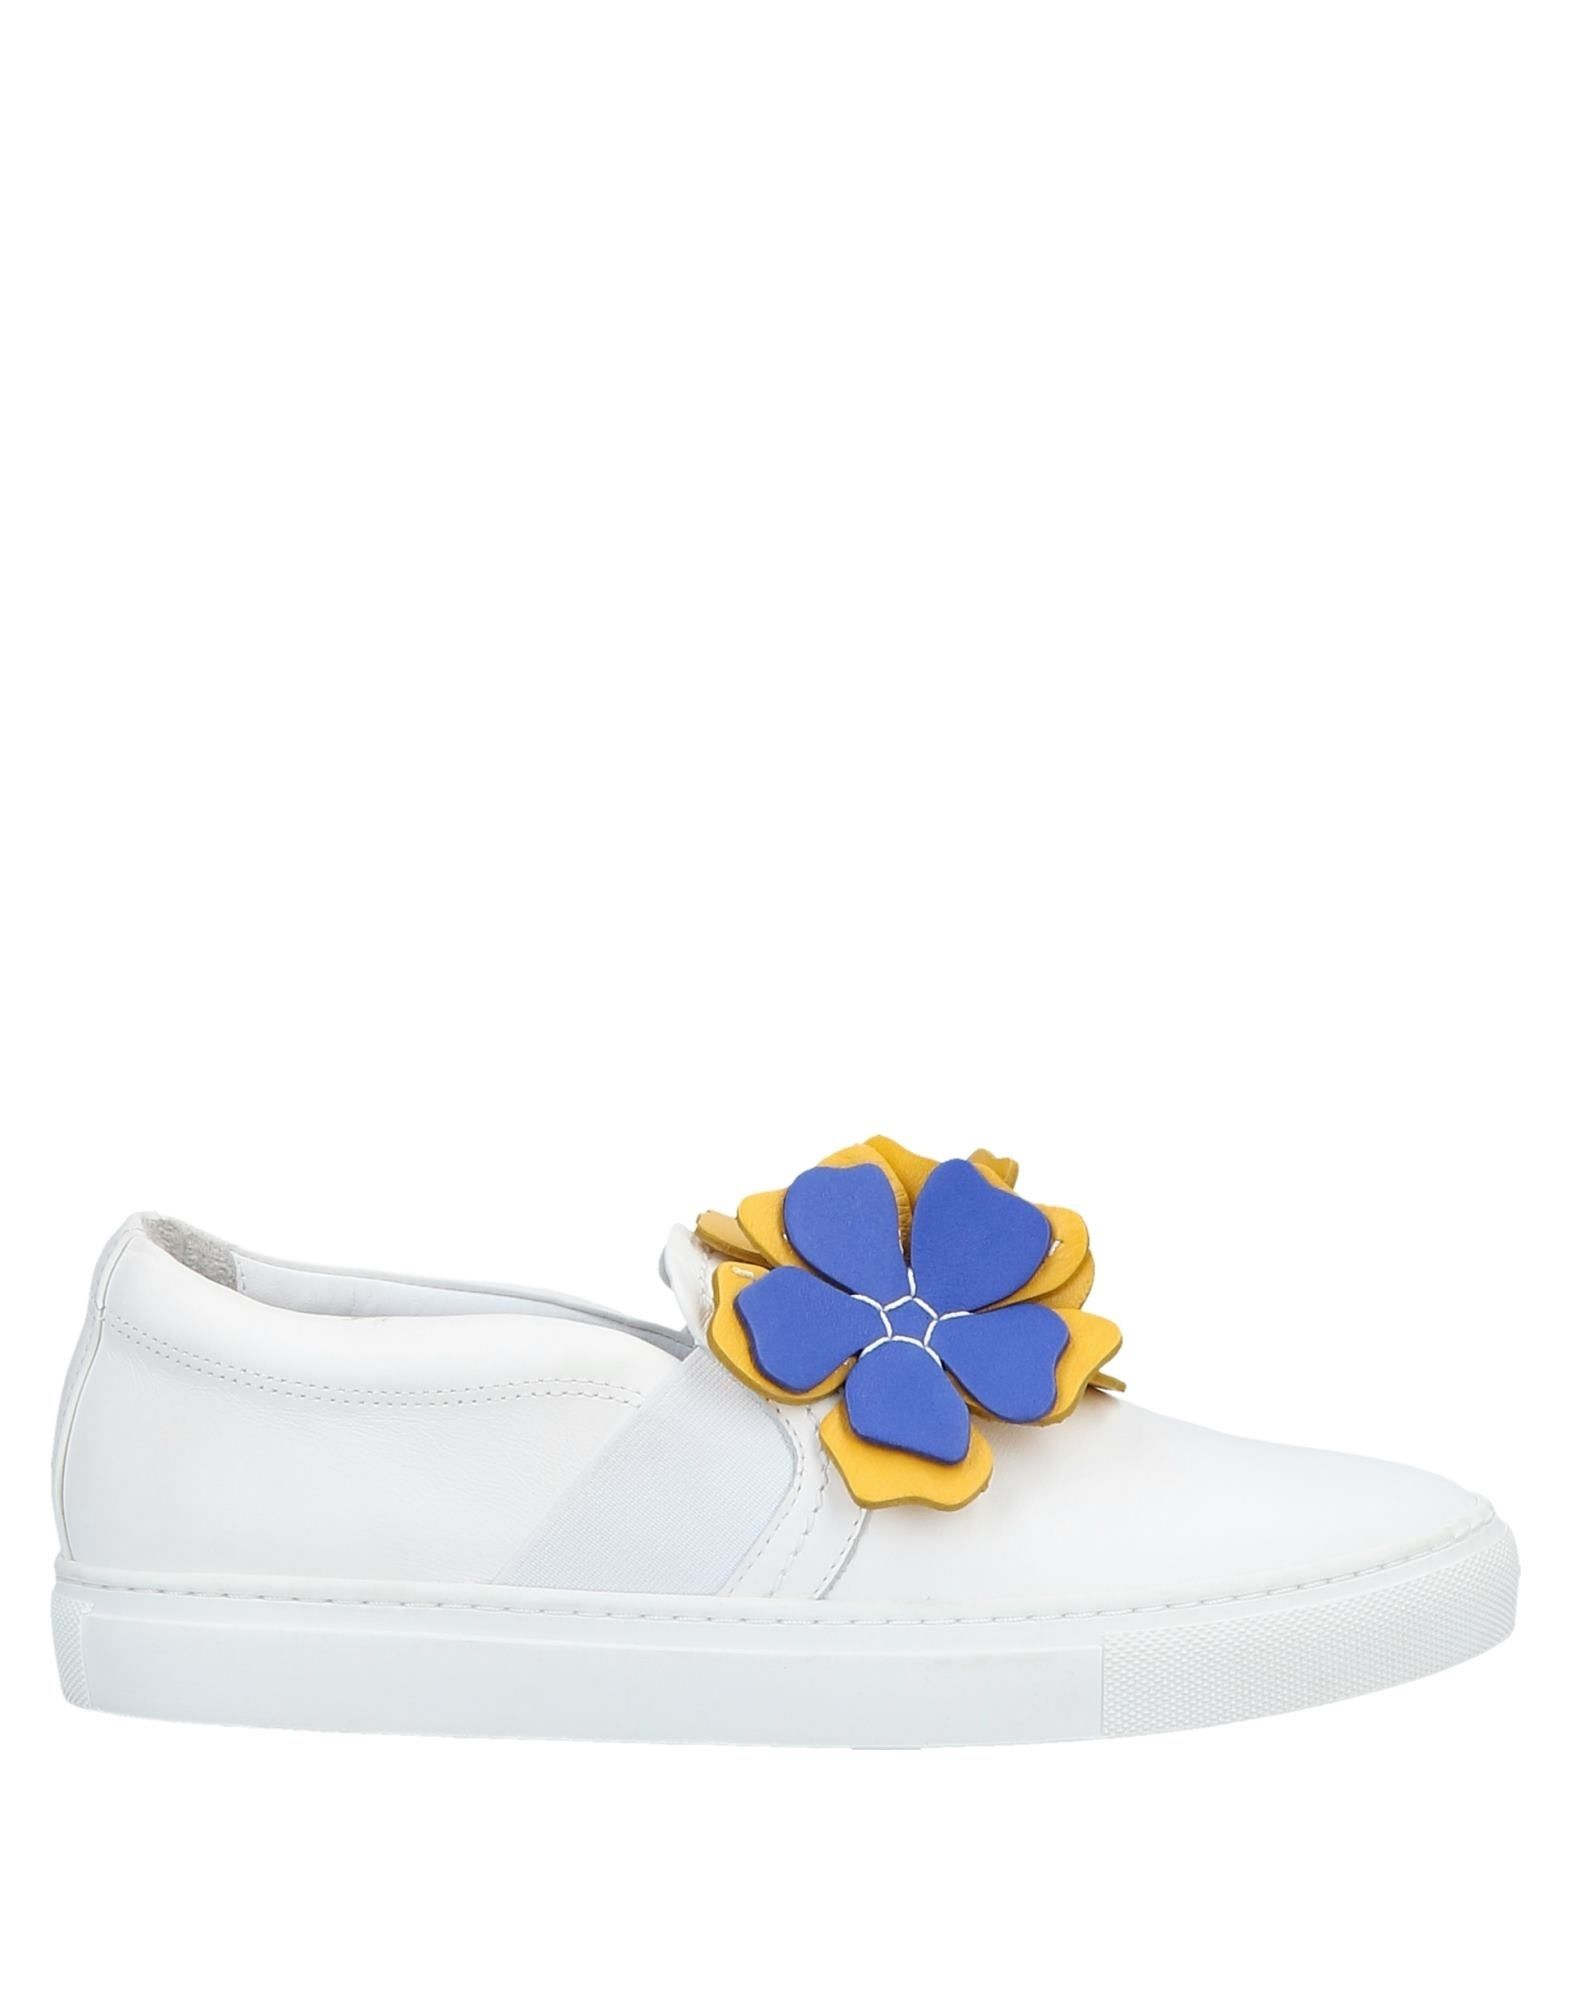 Lanvin Sneakers - Women Lanvin Sneakers online on 11570806VQ  United Kingdom - 11570806VQ on 143bc0